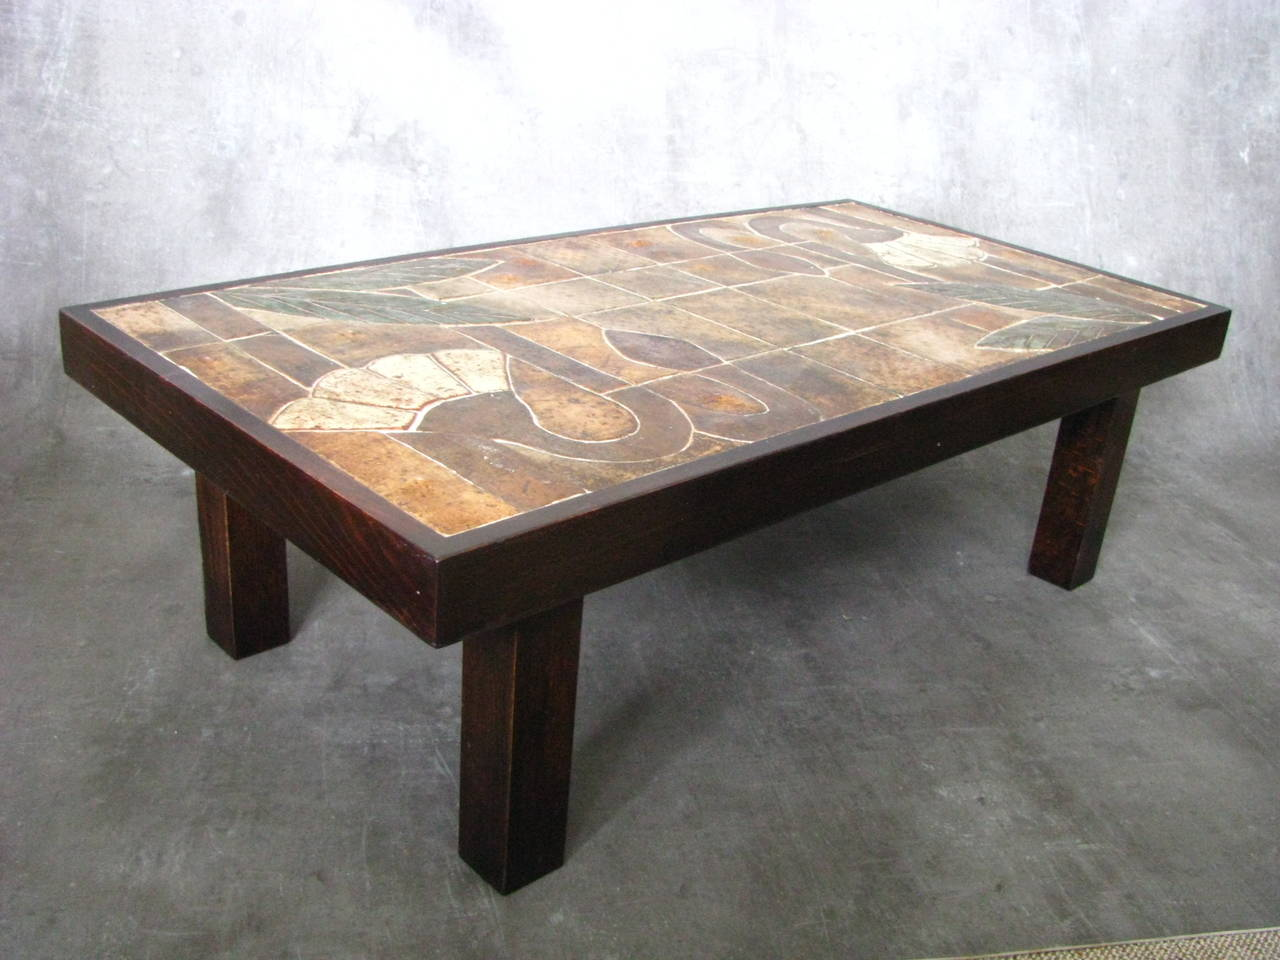 1960s Ceramic Coffee Table, Vallauris, France For Sale 1